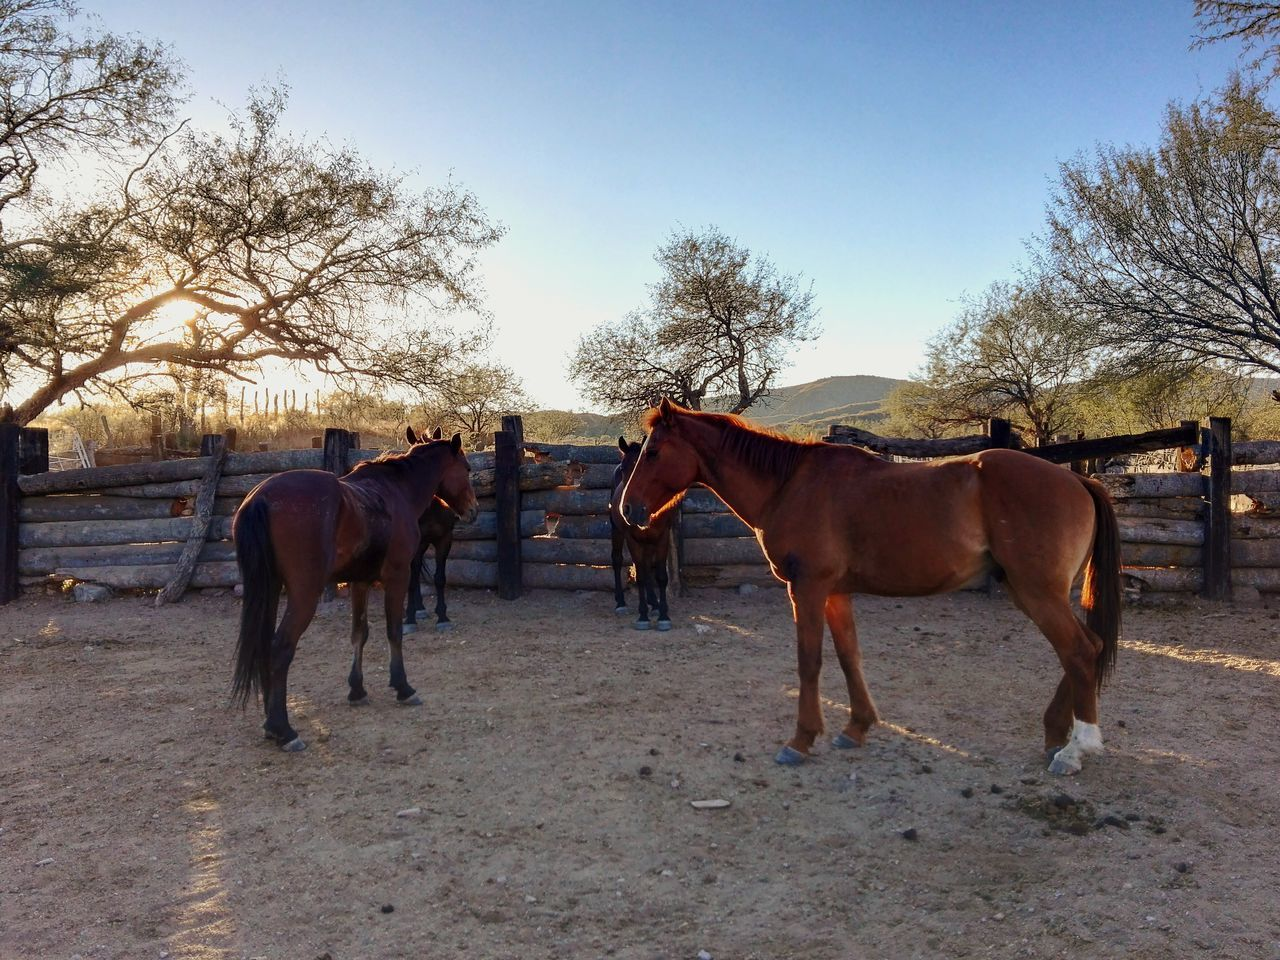 horse, domestic animals, animal themes, working animal, mammal, tree, livestock, two animals, herbivorous, day, field, horseback riding, outdoors, sky, nature, landscape, full length, clear sky, no people